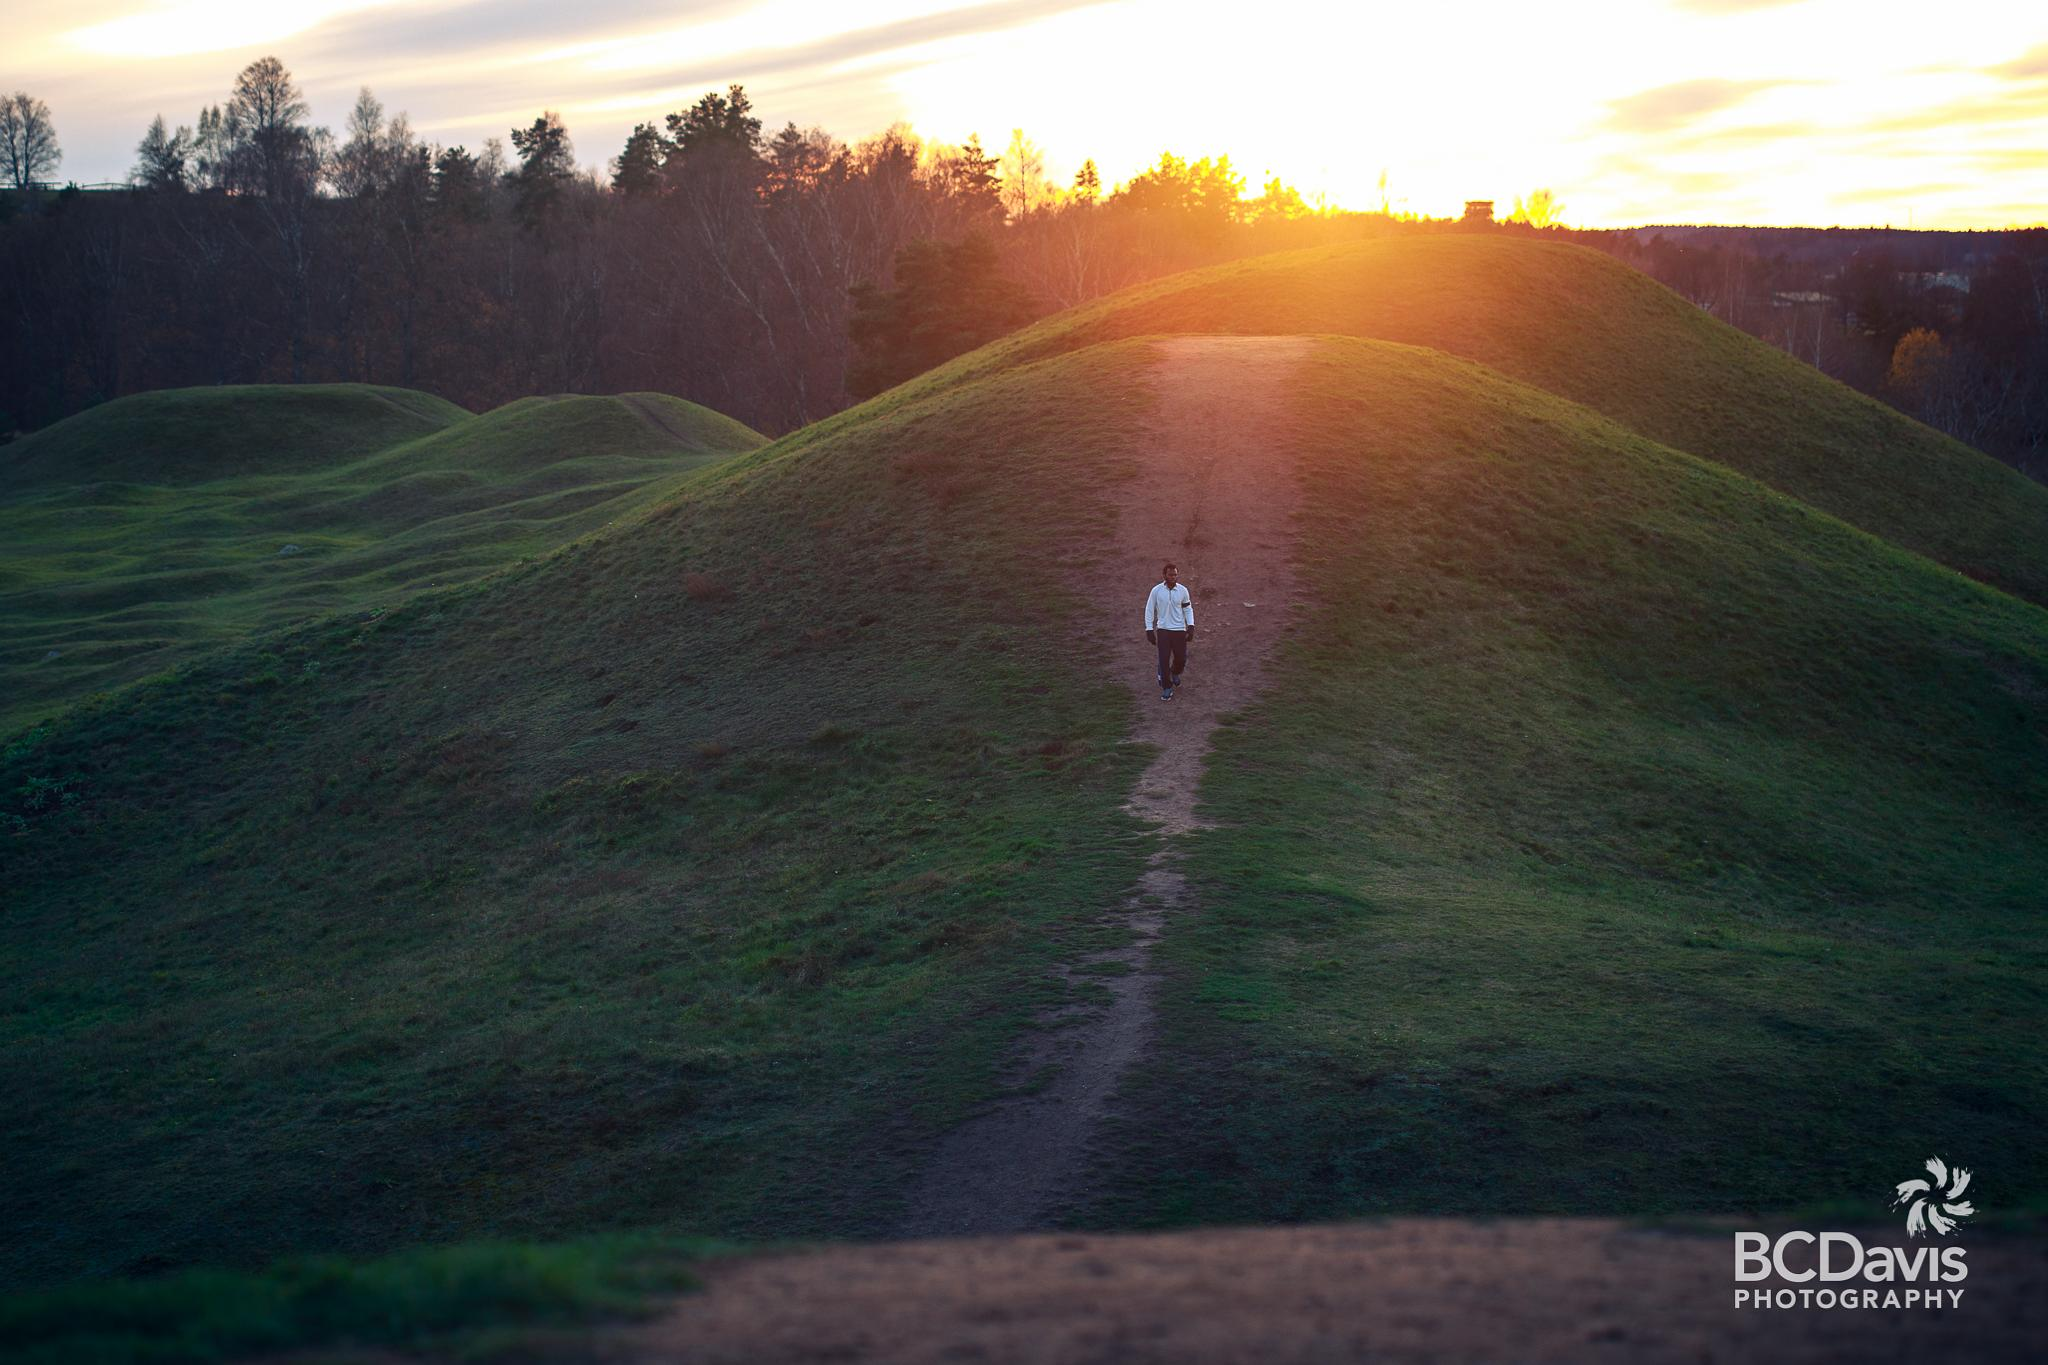 Running down mounds by BCDavis Photography